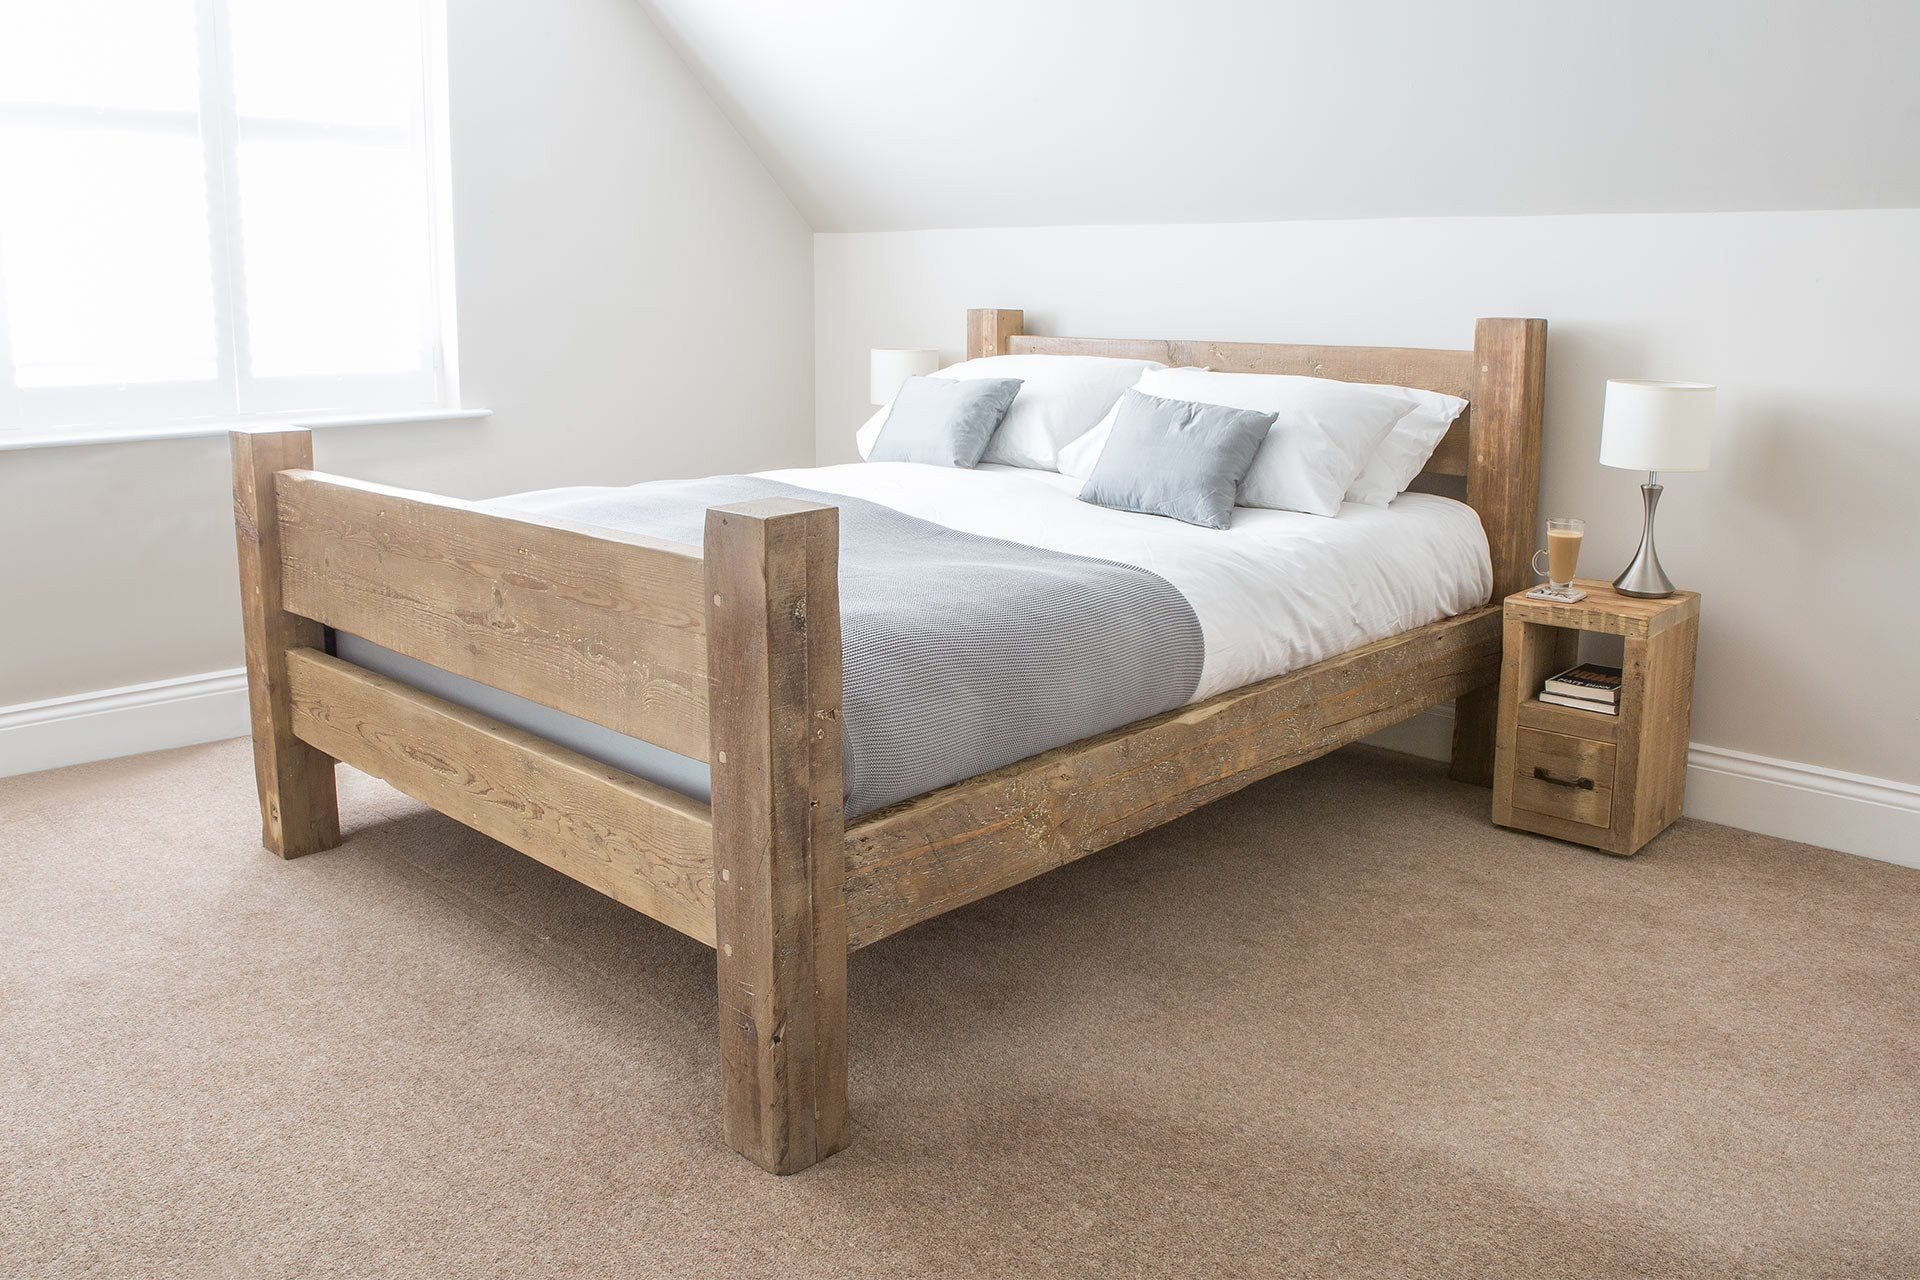 Natural Kingsize Bed With Slim Branson Bedsides (Sold Separately)